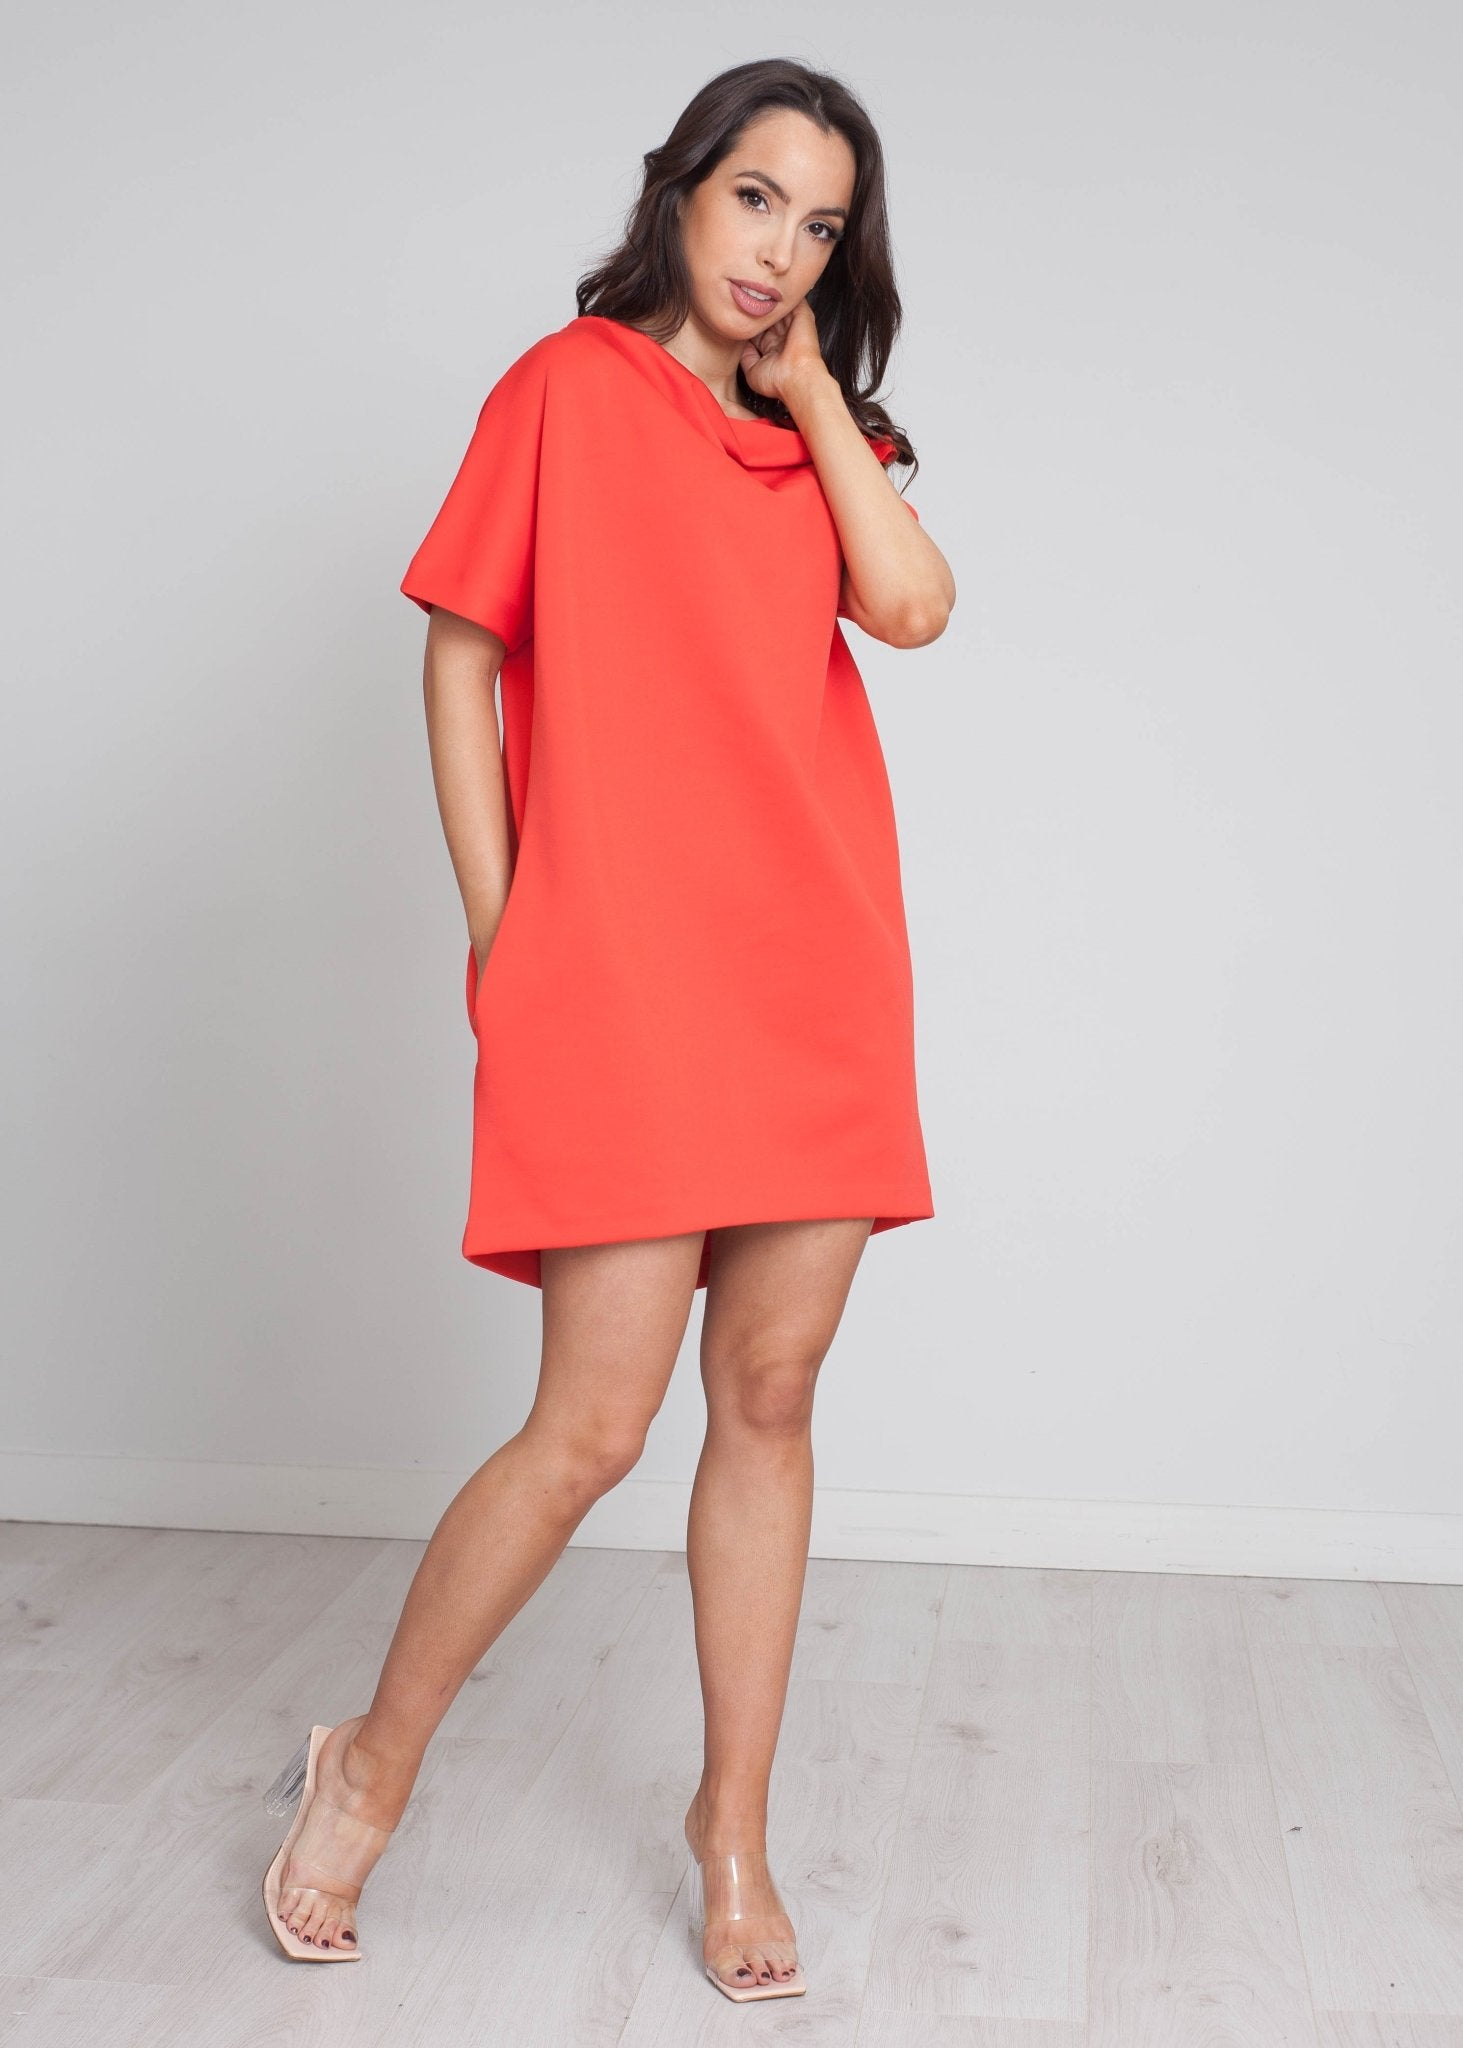 Sophia Slash Neck Mini Dress In Red - The Walk in Wardrobe